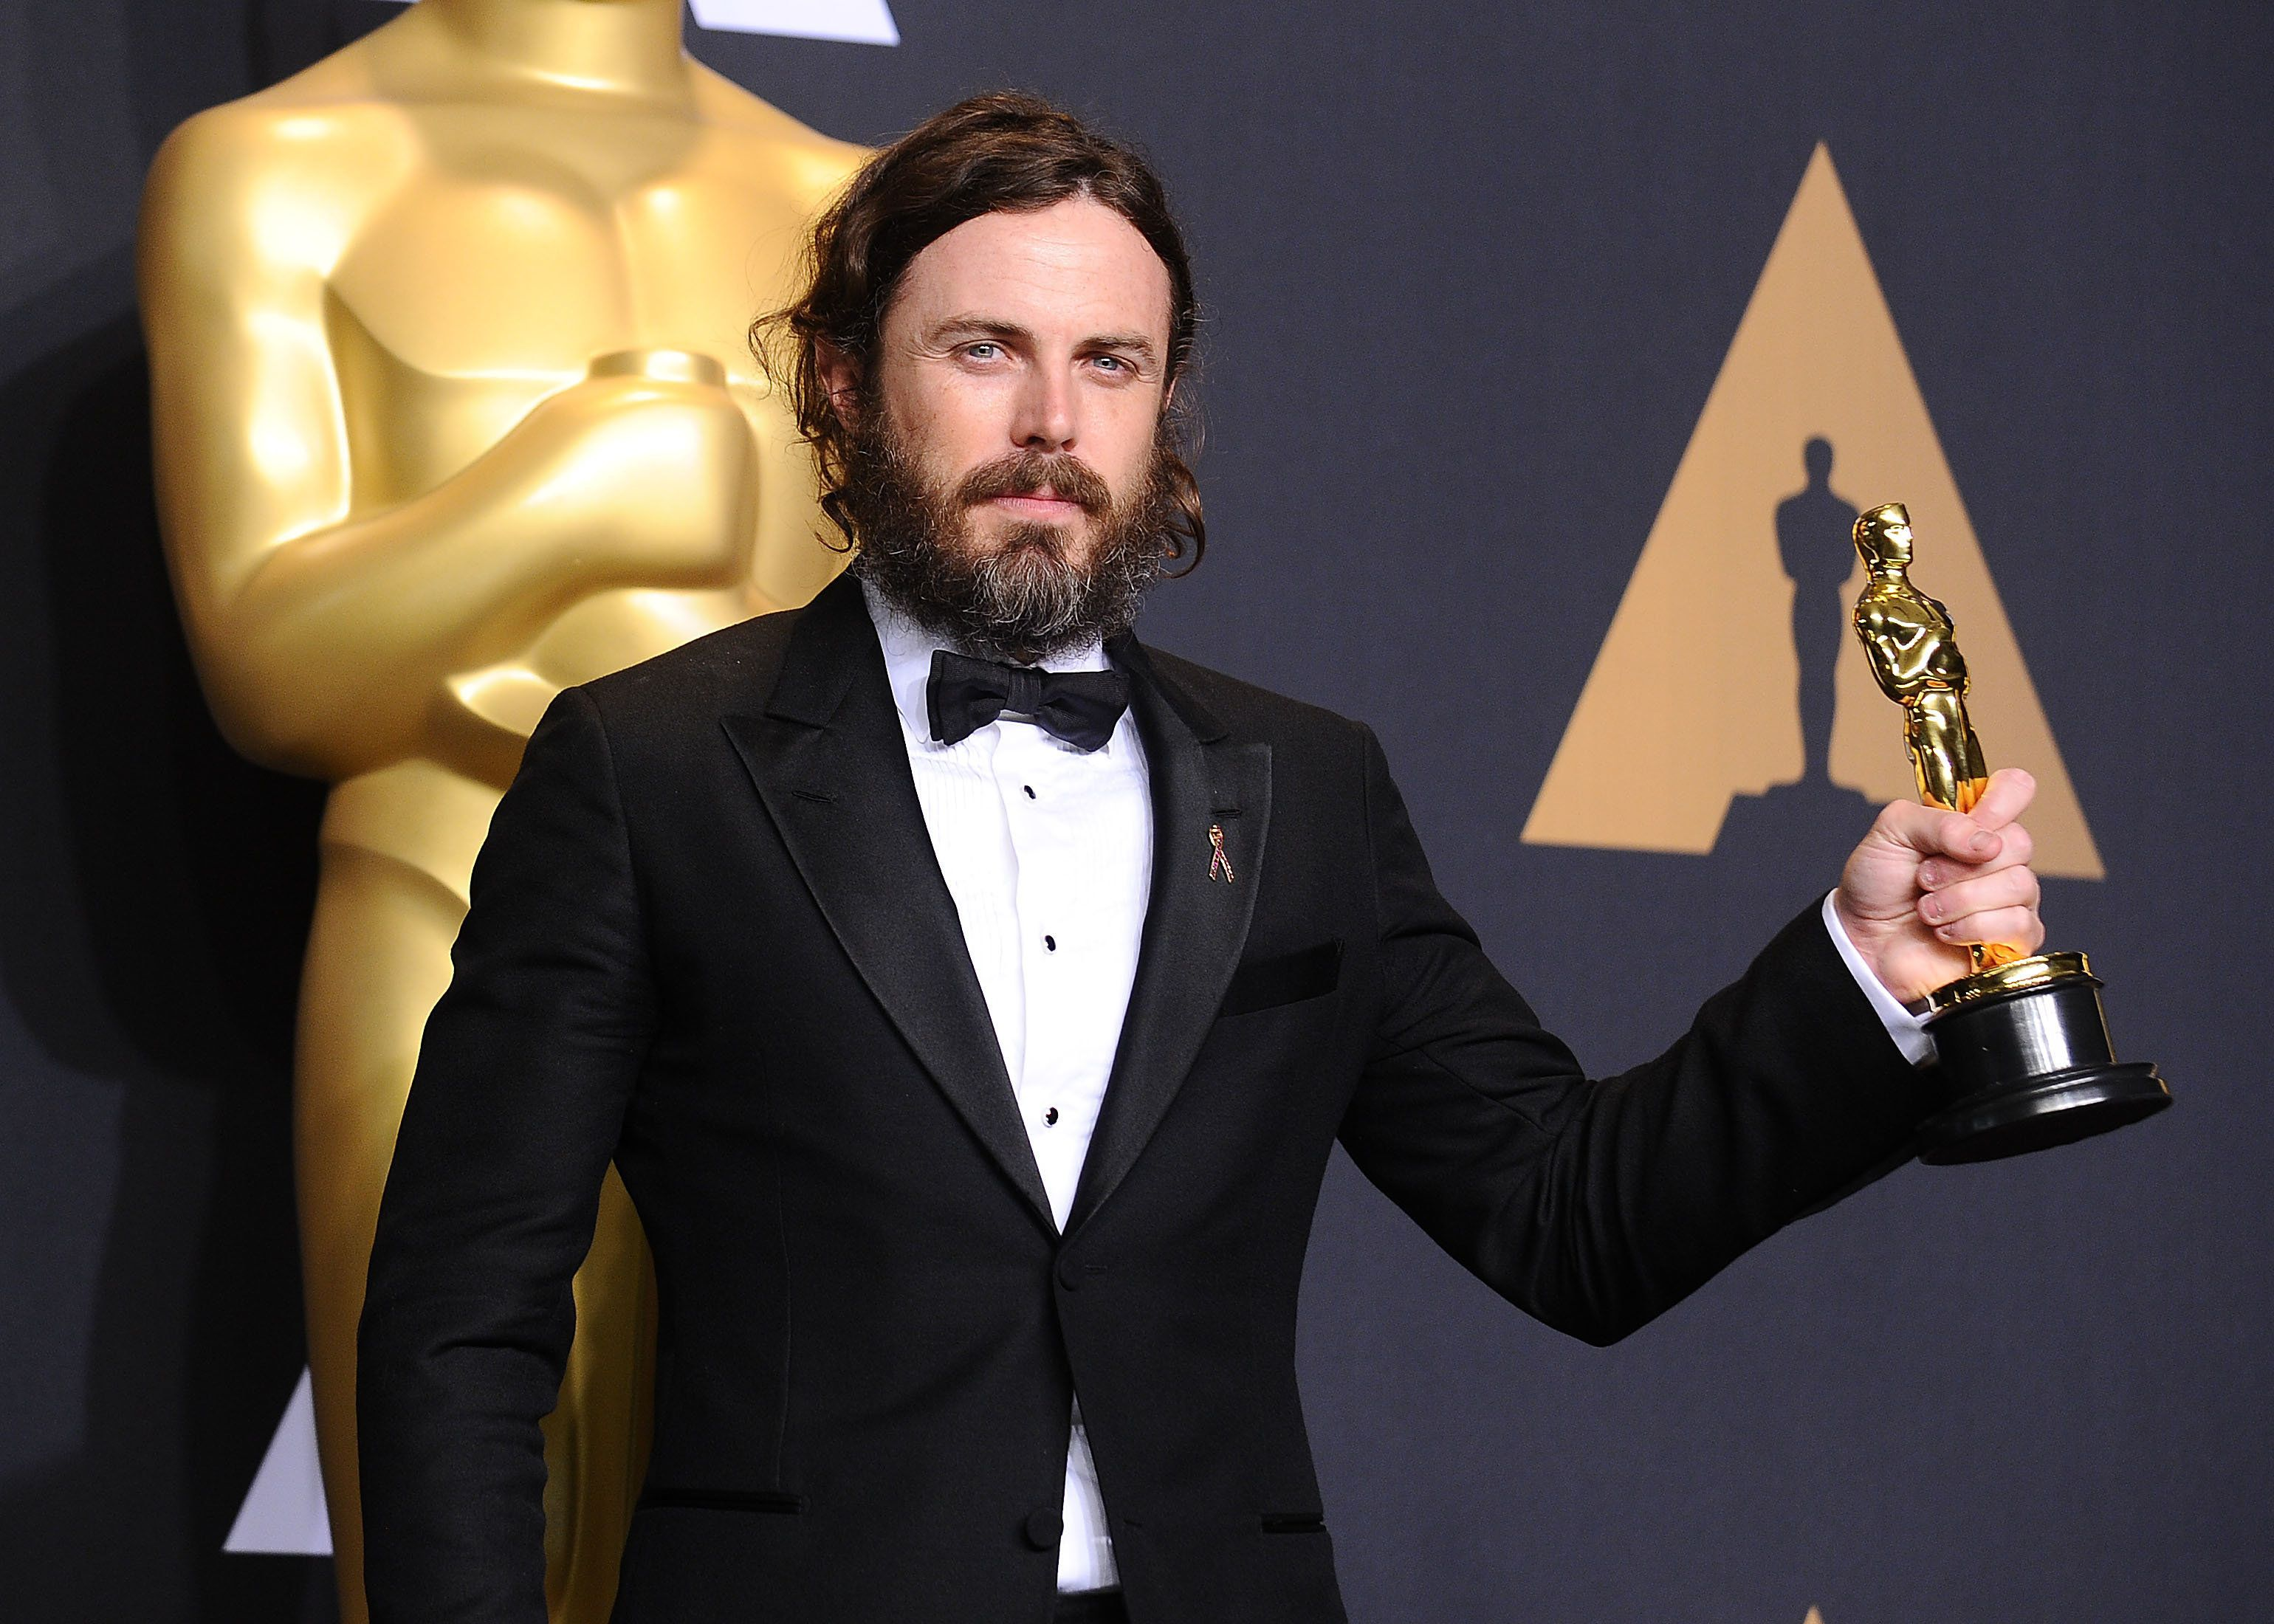 Casey Affleck Apologizes For 'Unprofessional' Behavior After Me Too